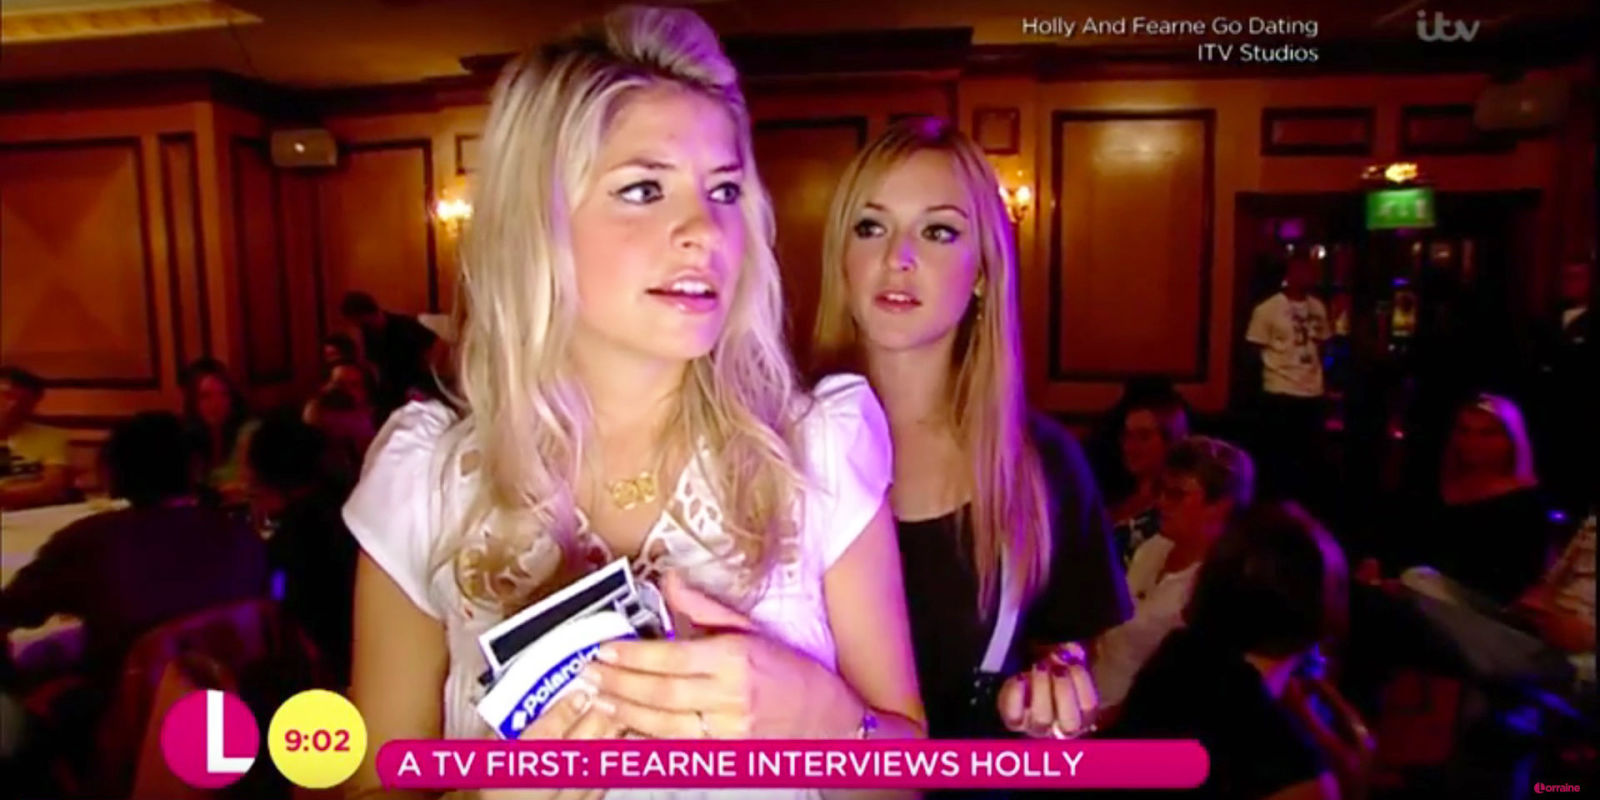 holly and ferne go dating